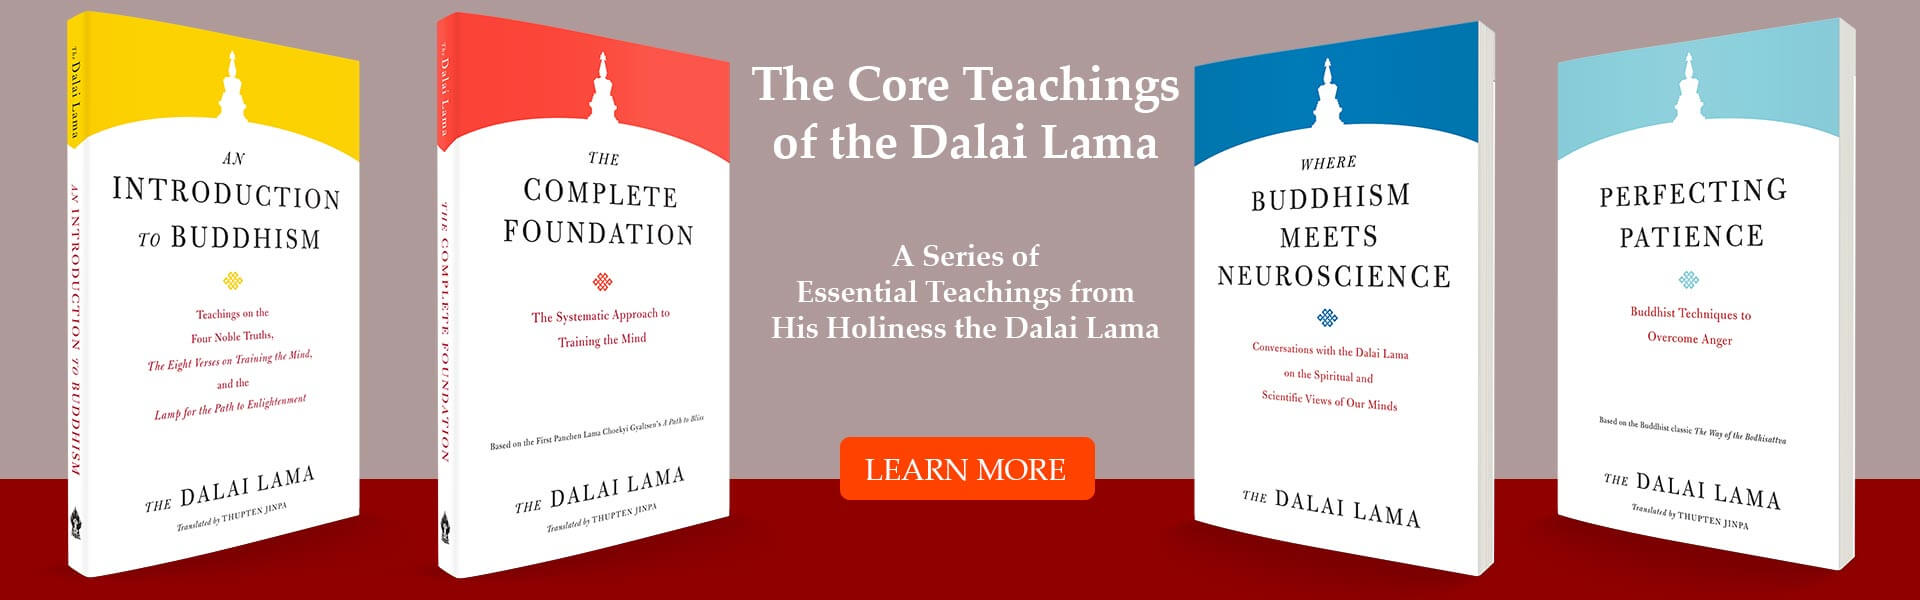 Core Teachings of the Dalai Lama